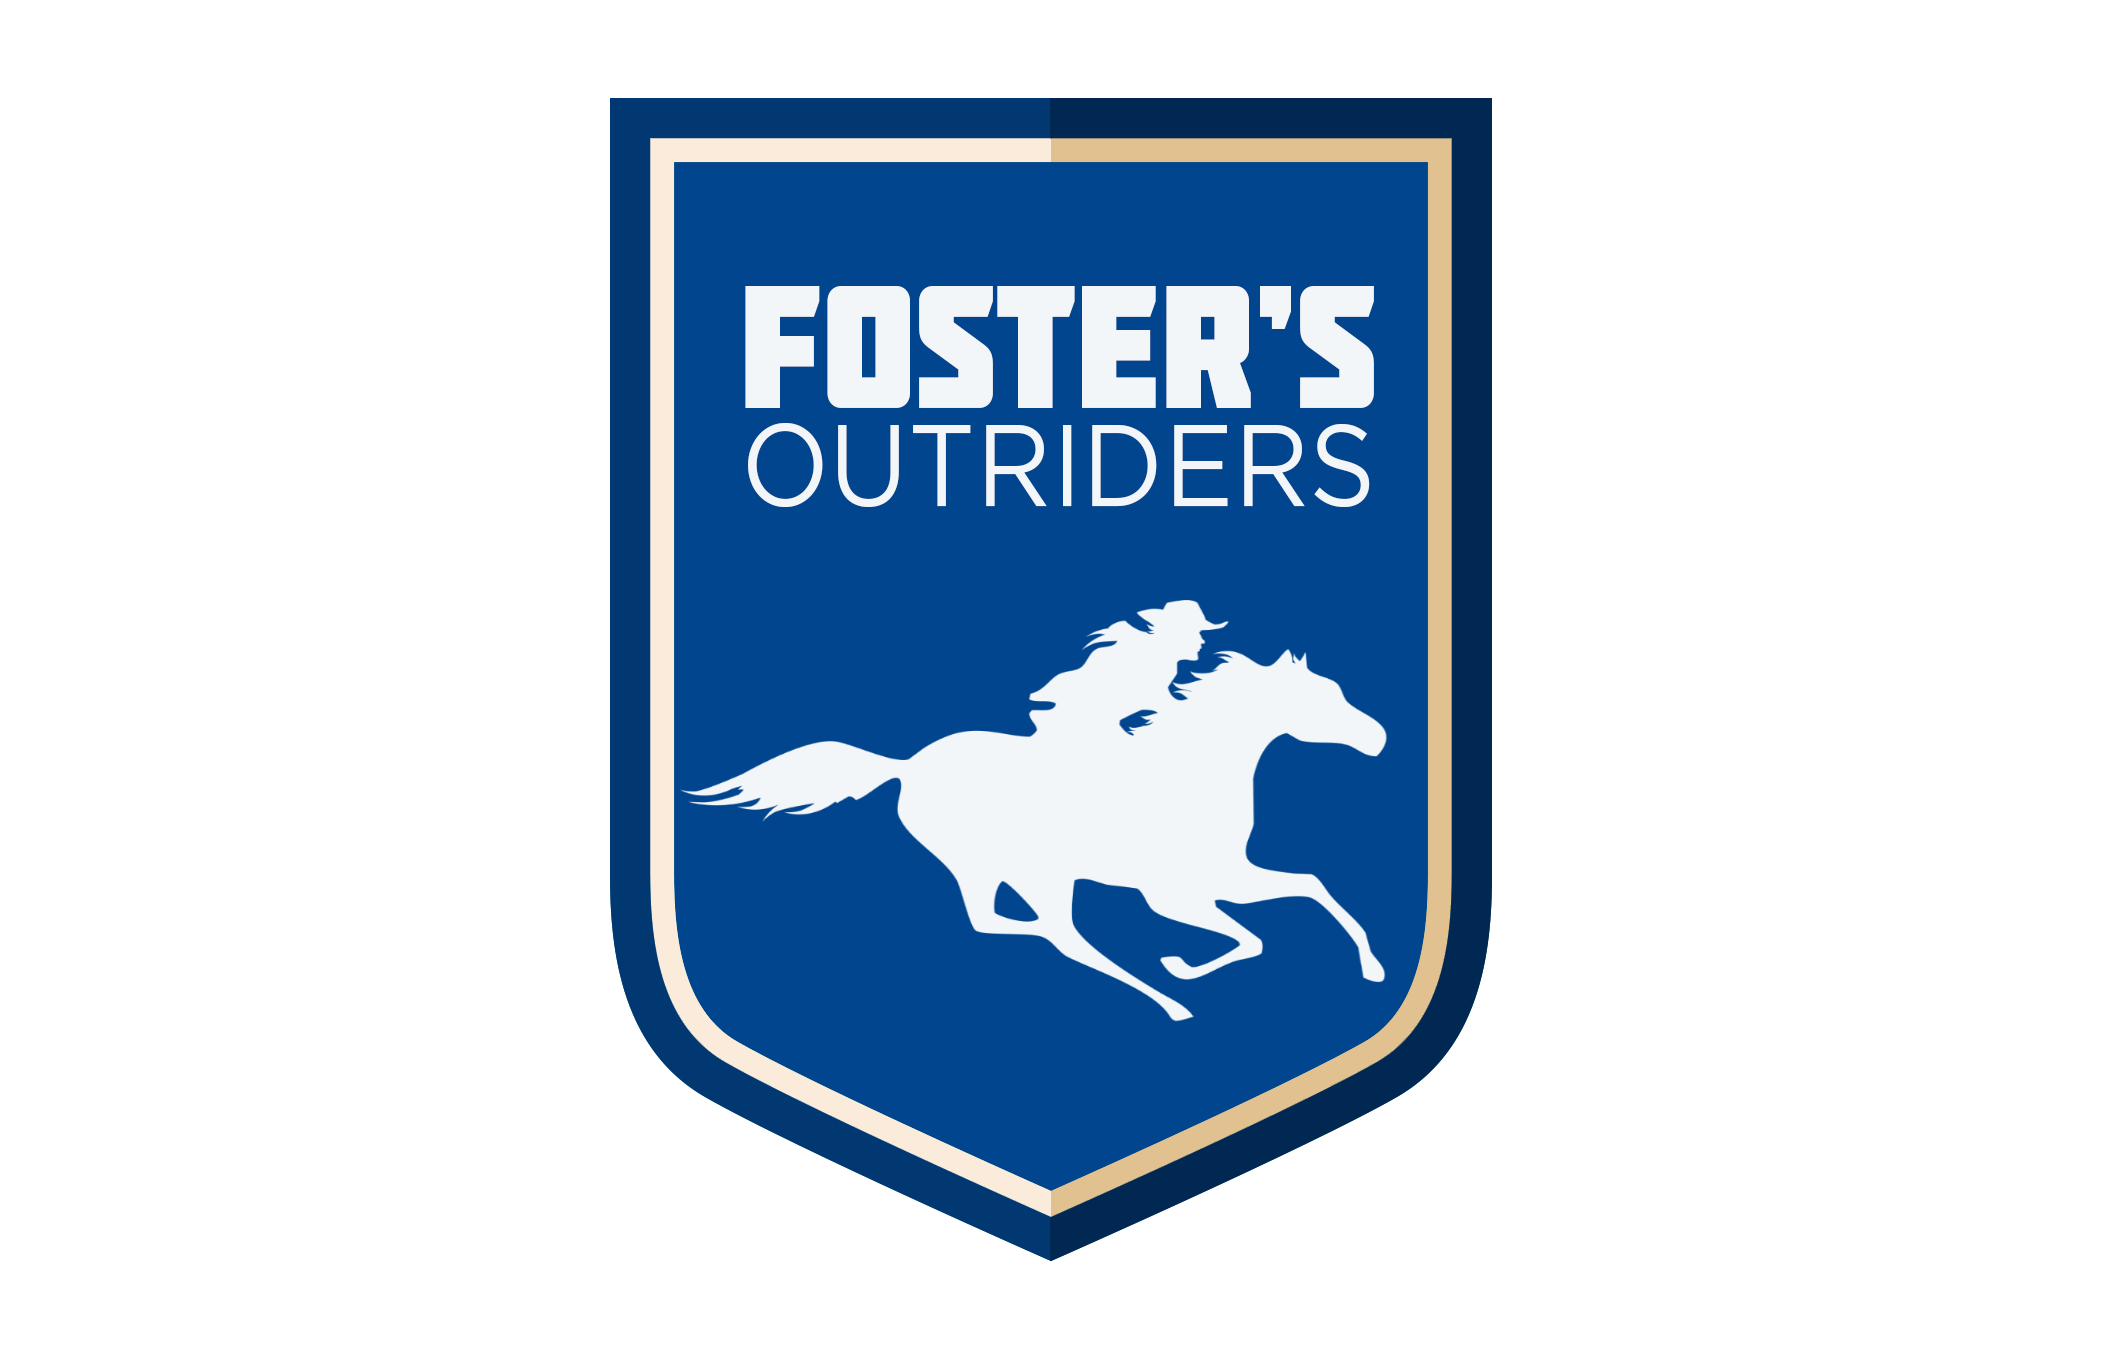 Fosters Outriders Logo